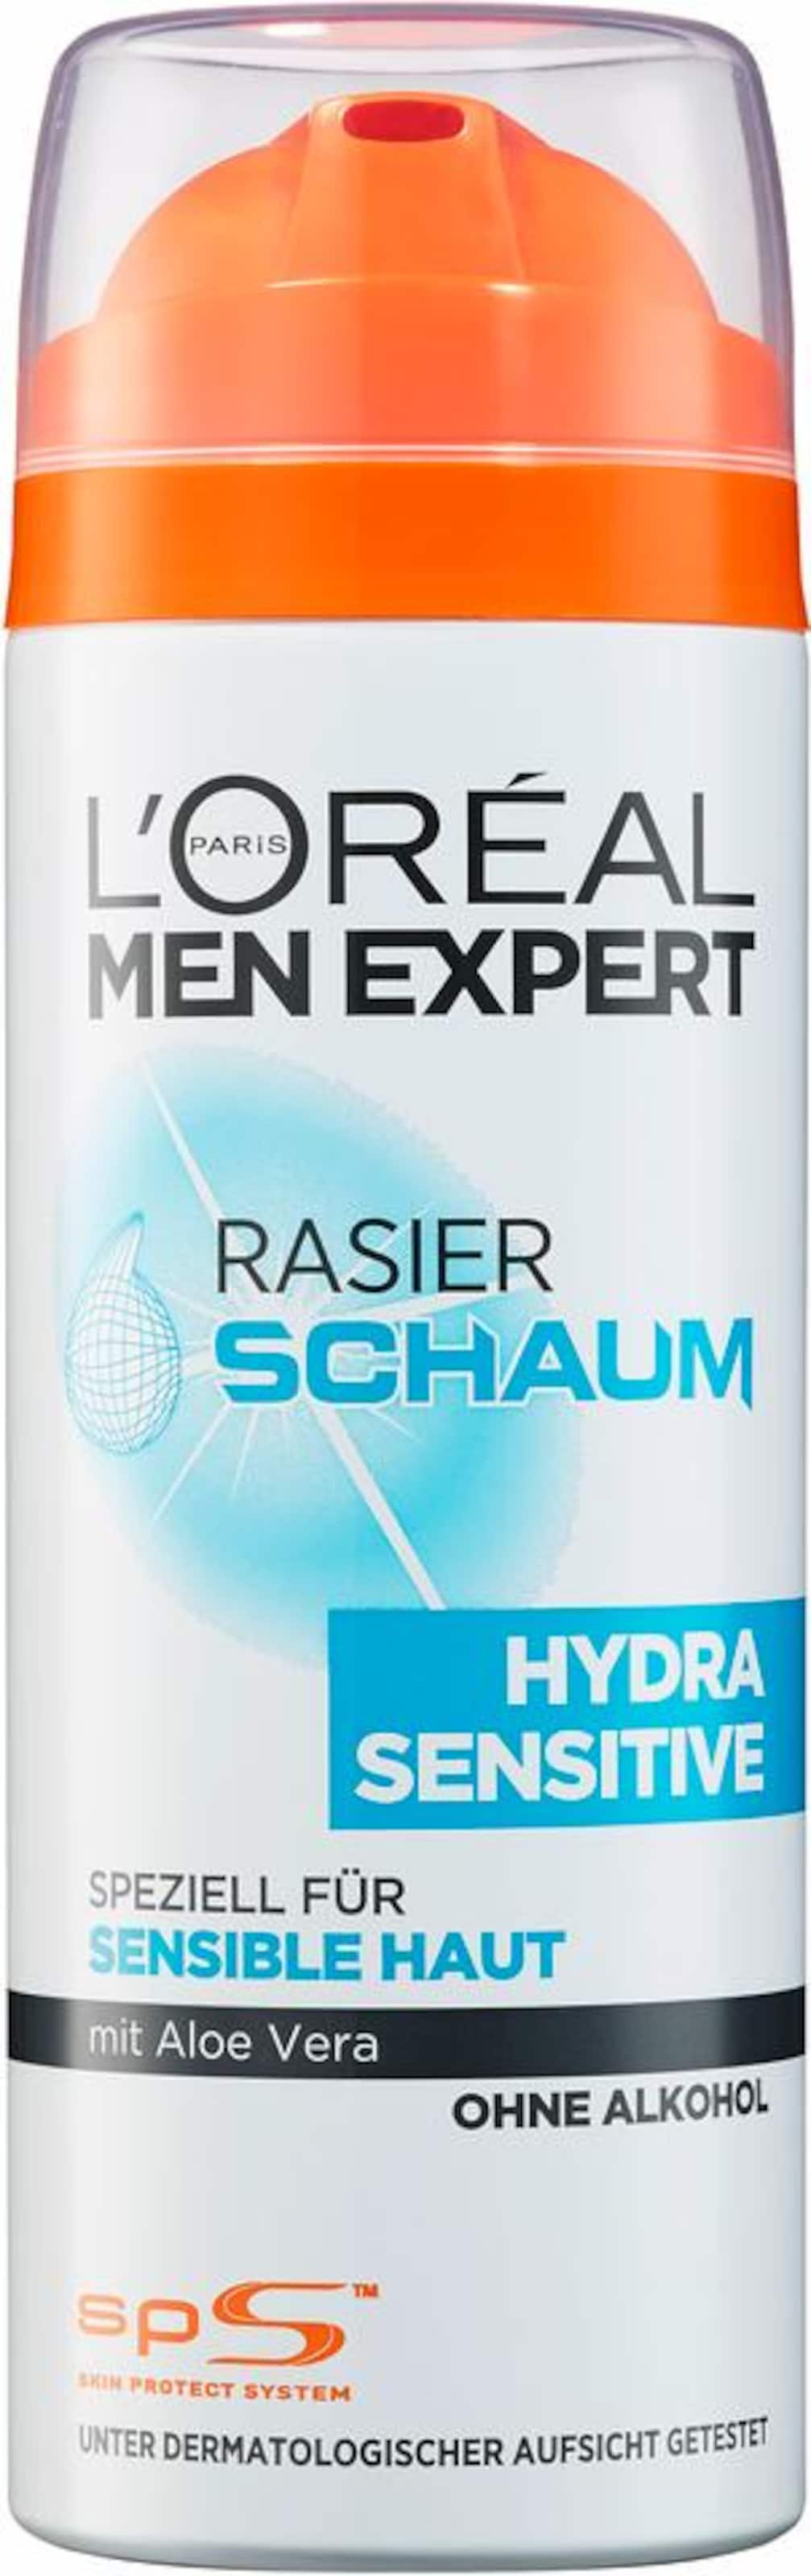 L'Oréal Paris men expert 'Hydra Sensitive Rasierschaum', Rasierschaum